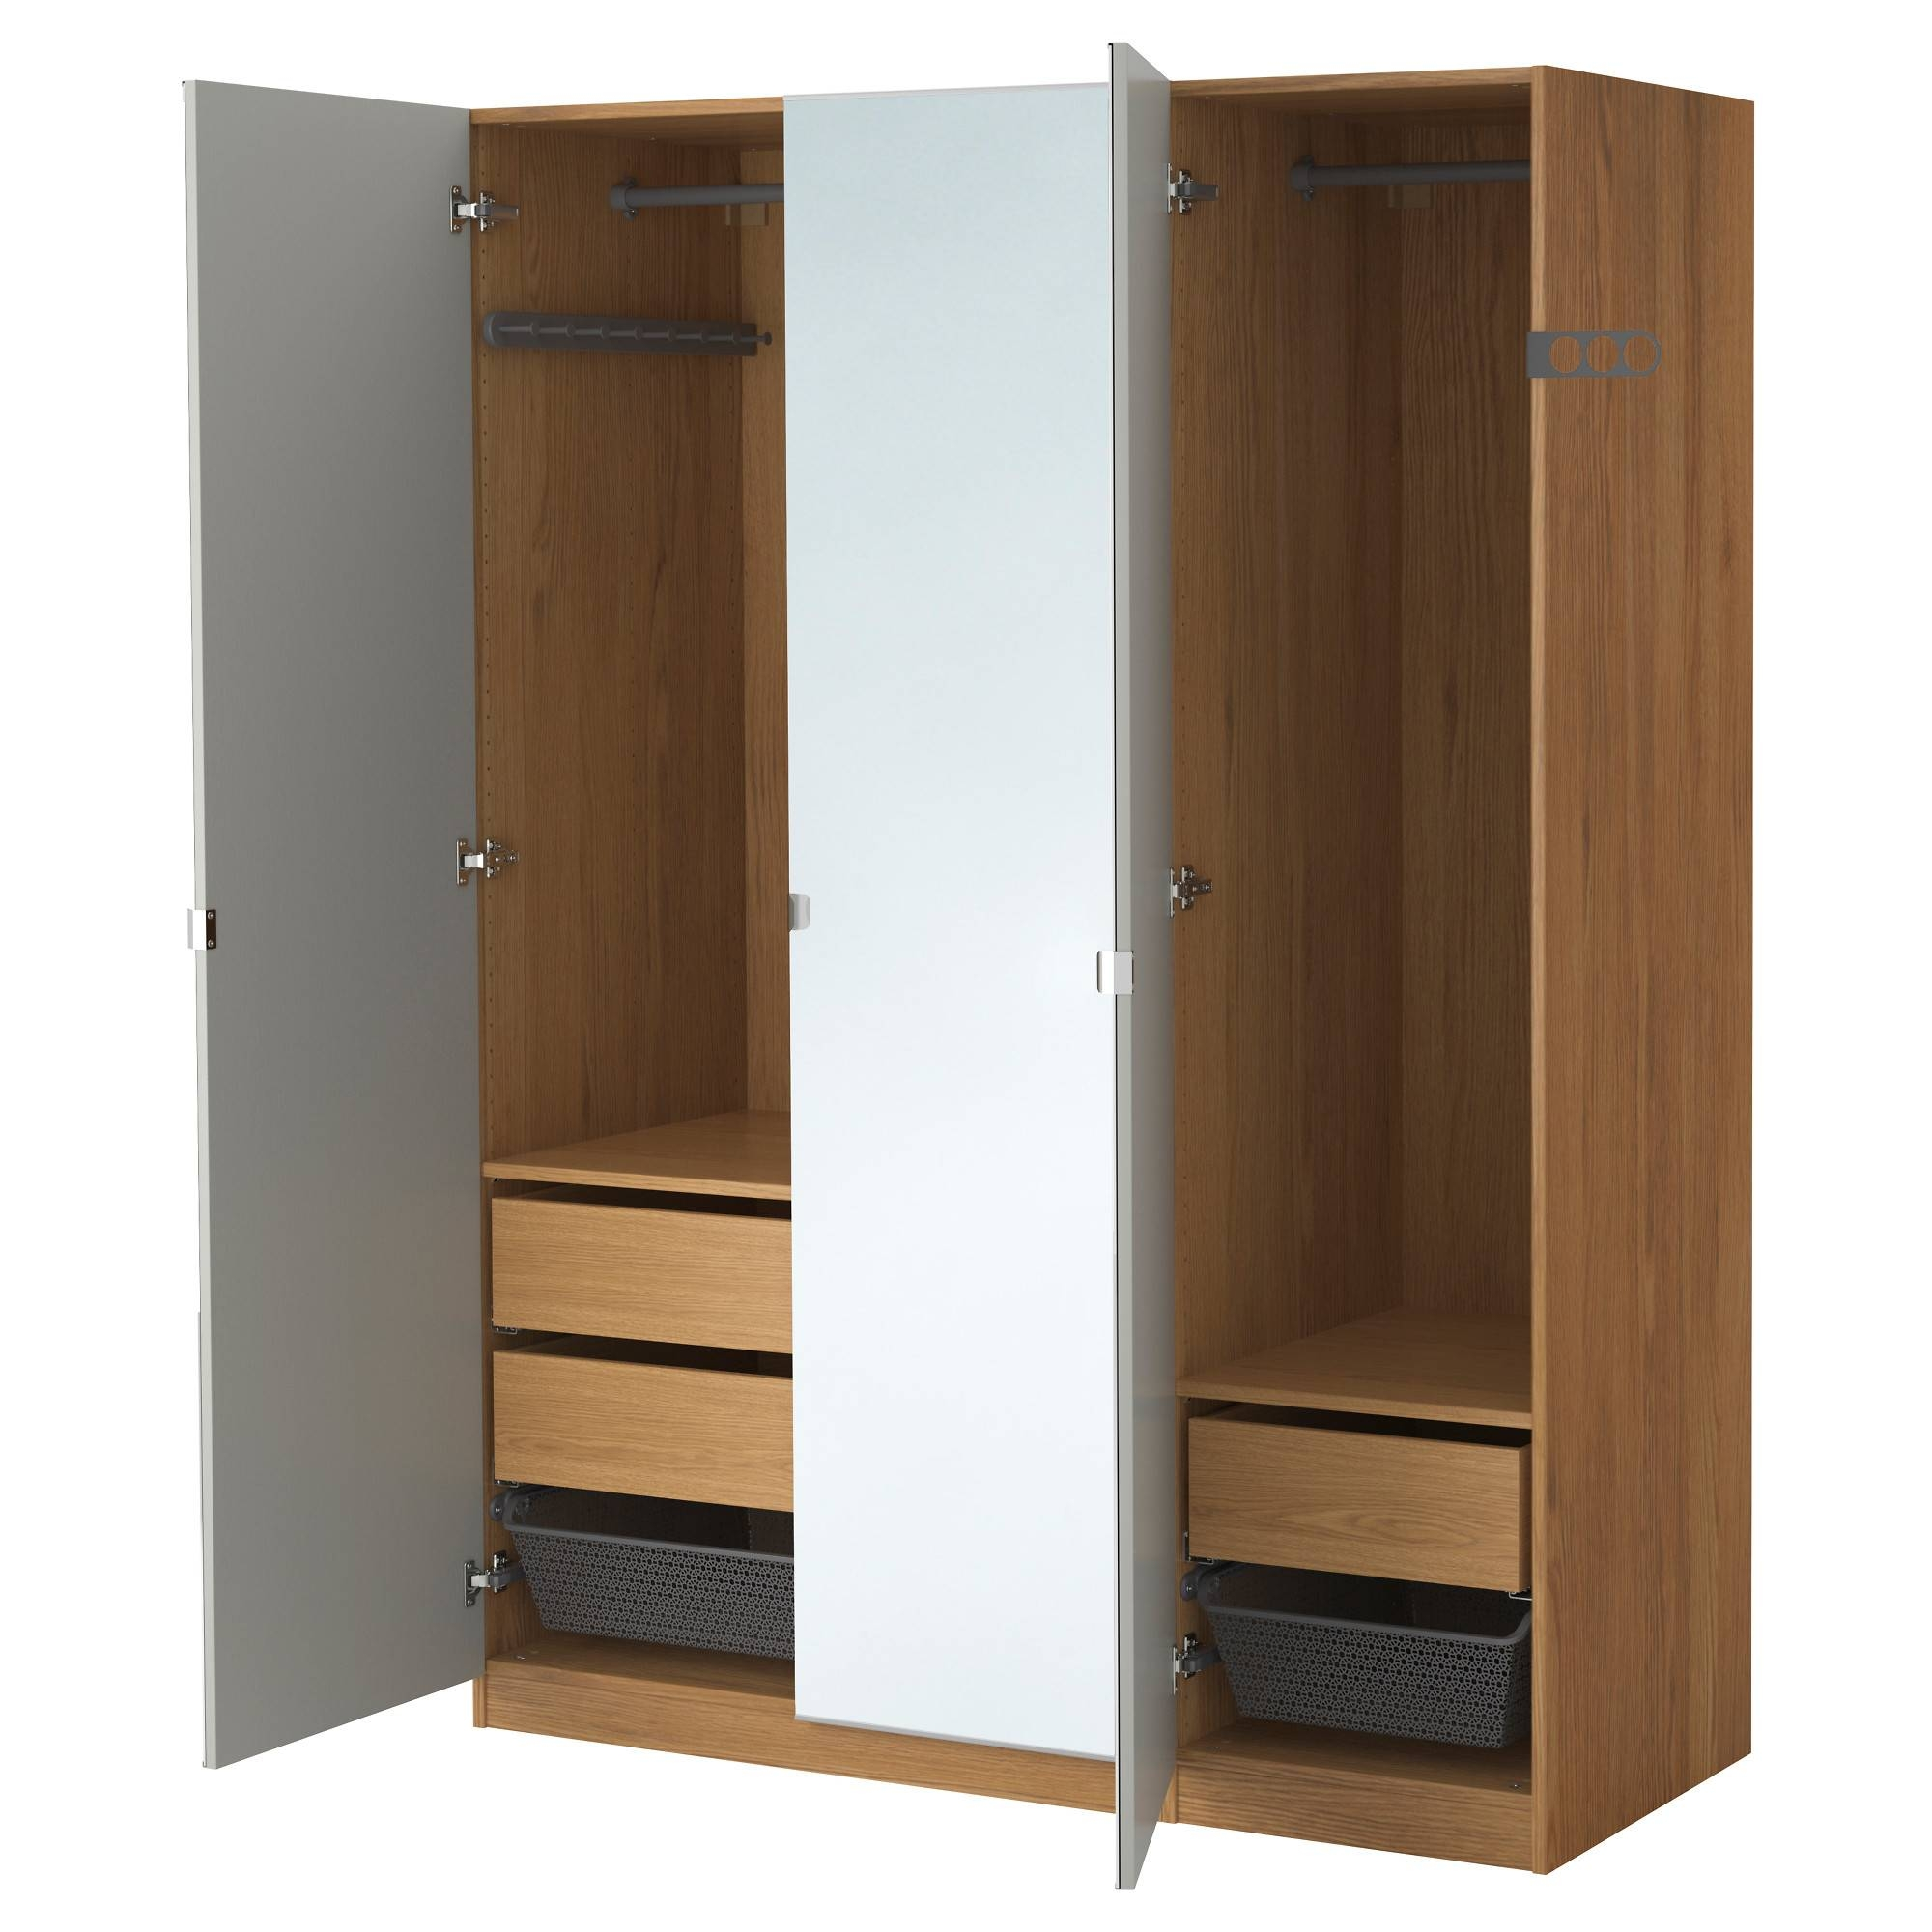 Wardrobes | Ikea throughout Wardrobes With Mirror And Drawers (Image 15 of 15)